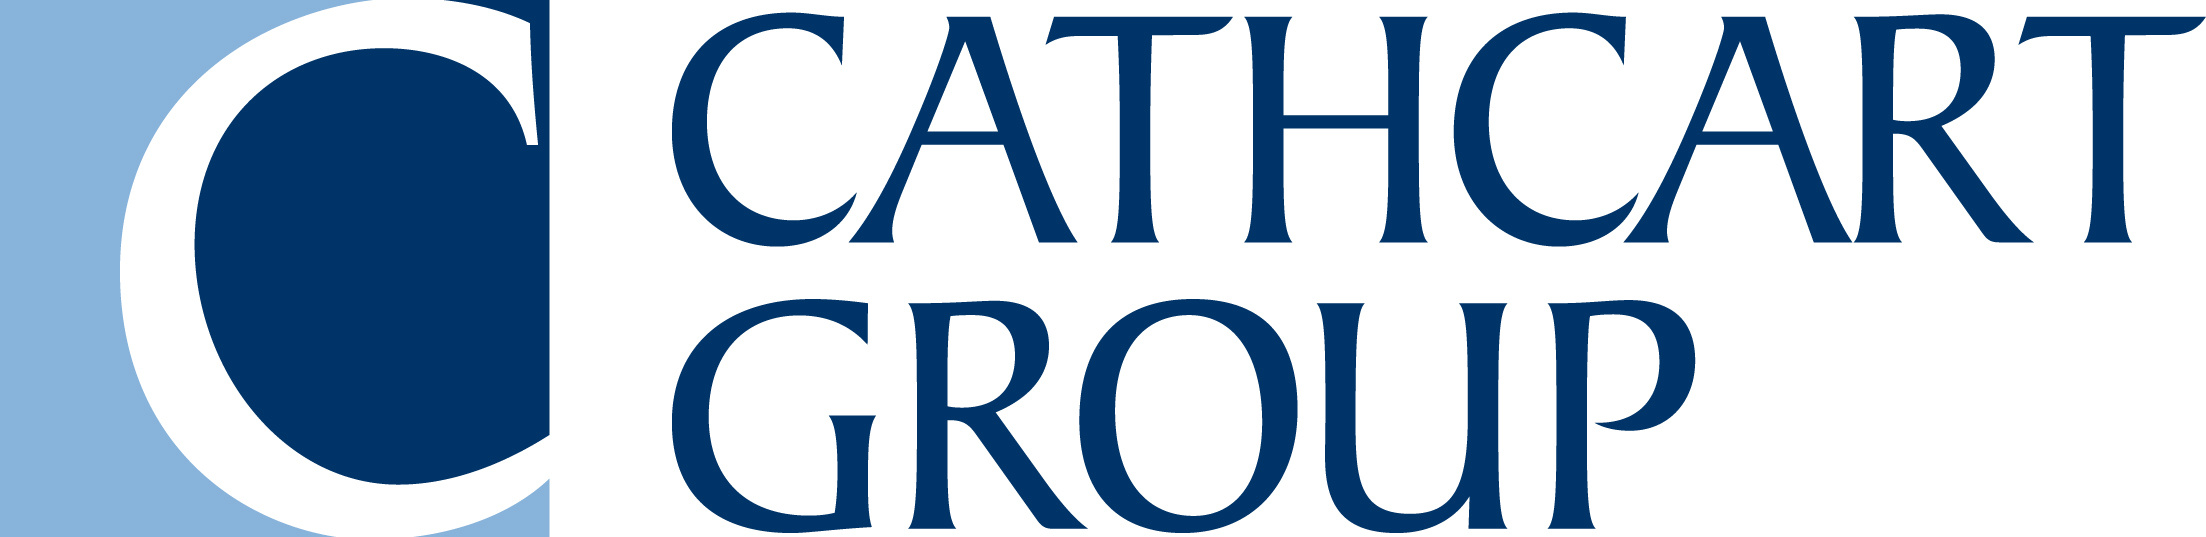 Cathcart Group